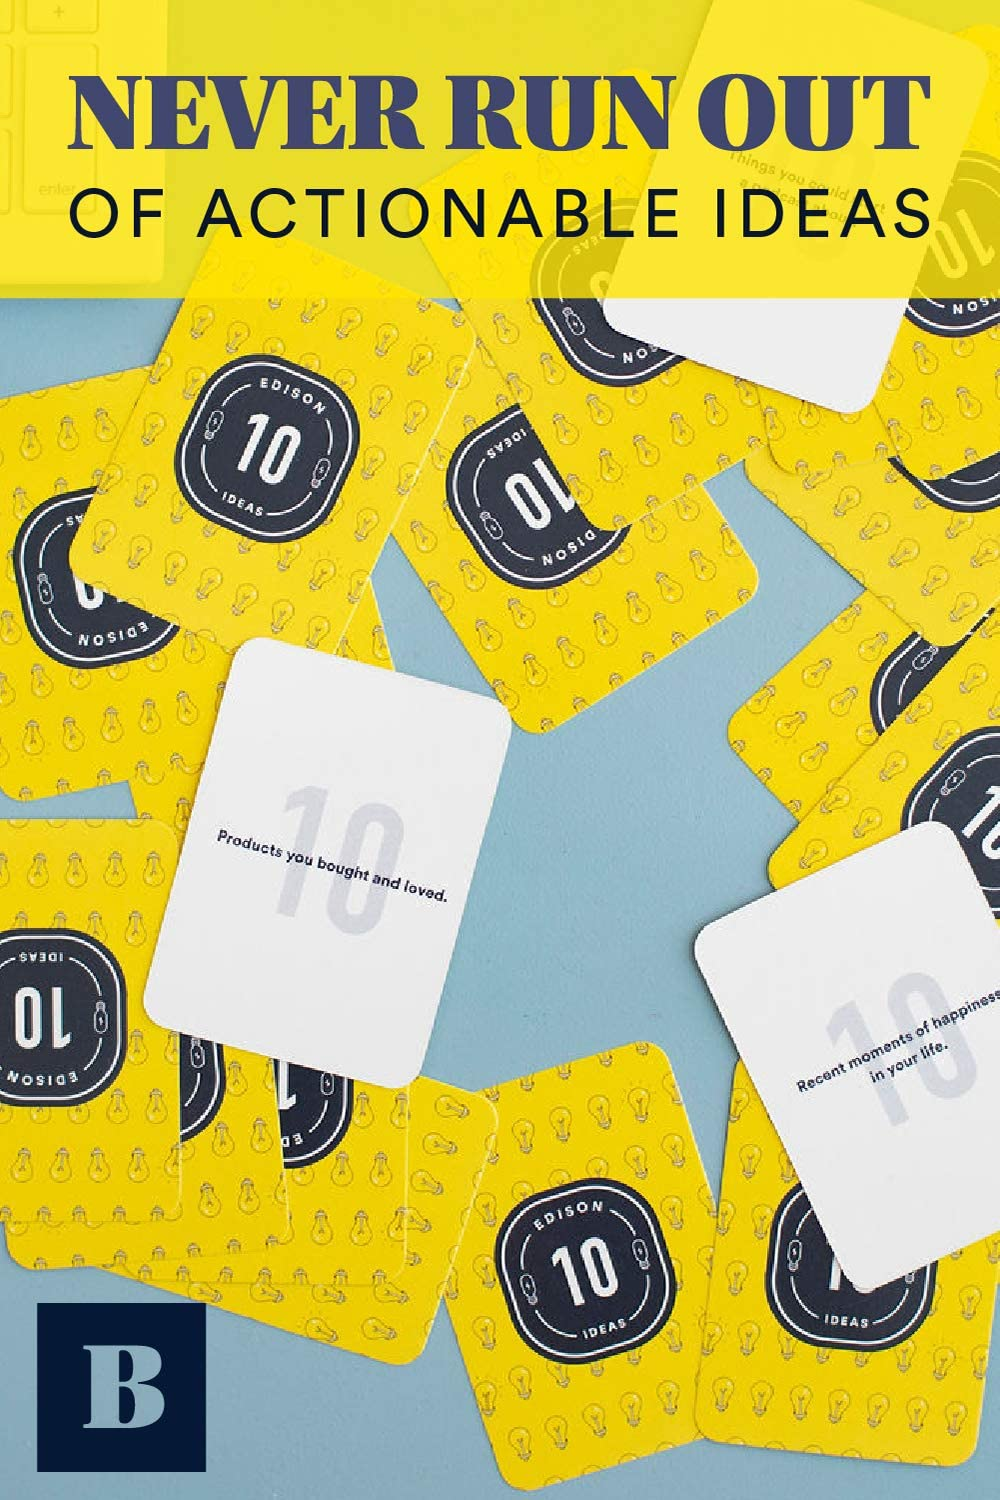 Idea Generation Edison Deck by BestSelf /— Brainstorming Thought Provoking and Writing Prompts Perfect for Unlocking Fresh Disruptive and Creative Ideas /— 150 Cards for Writing and Thinking 150